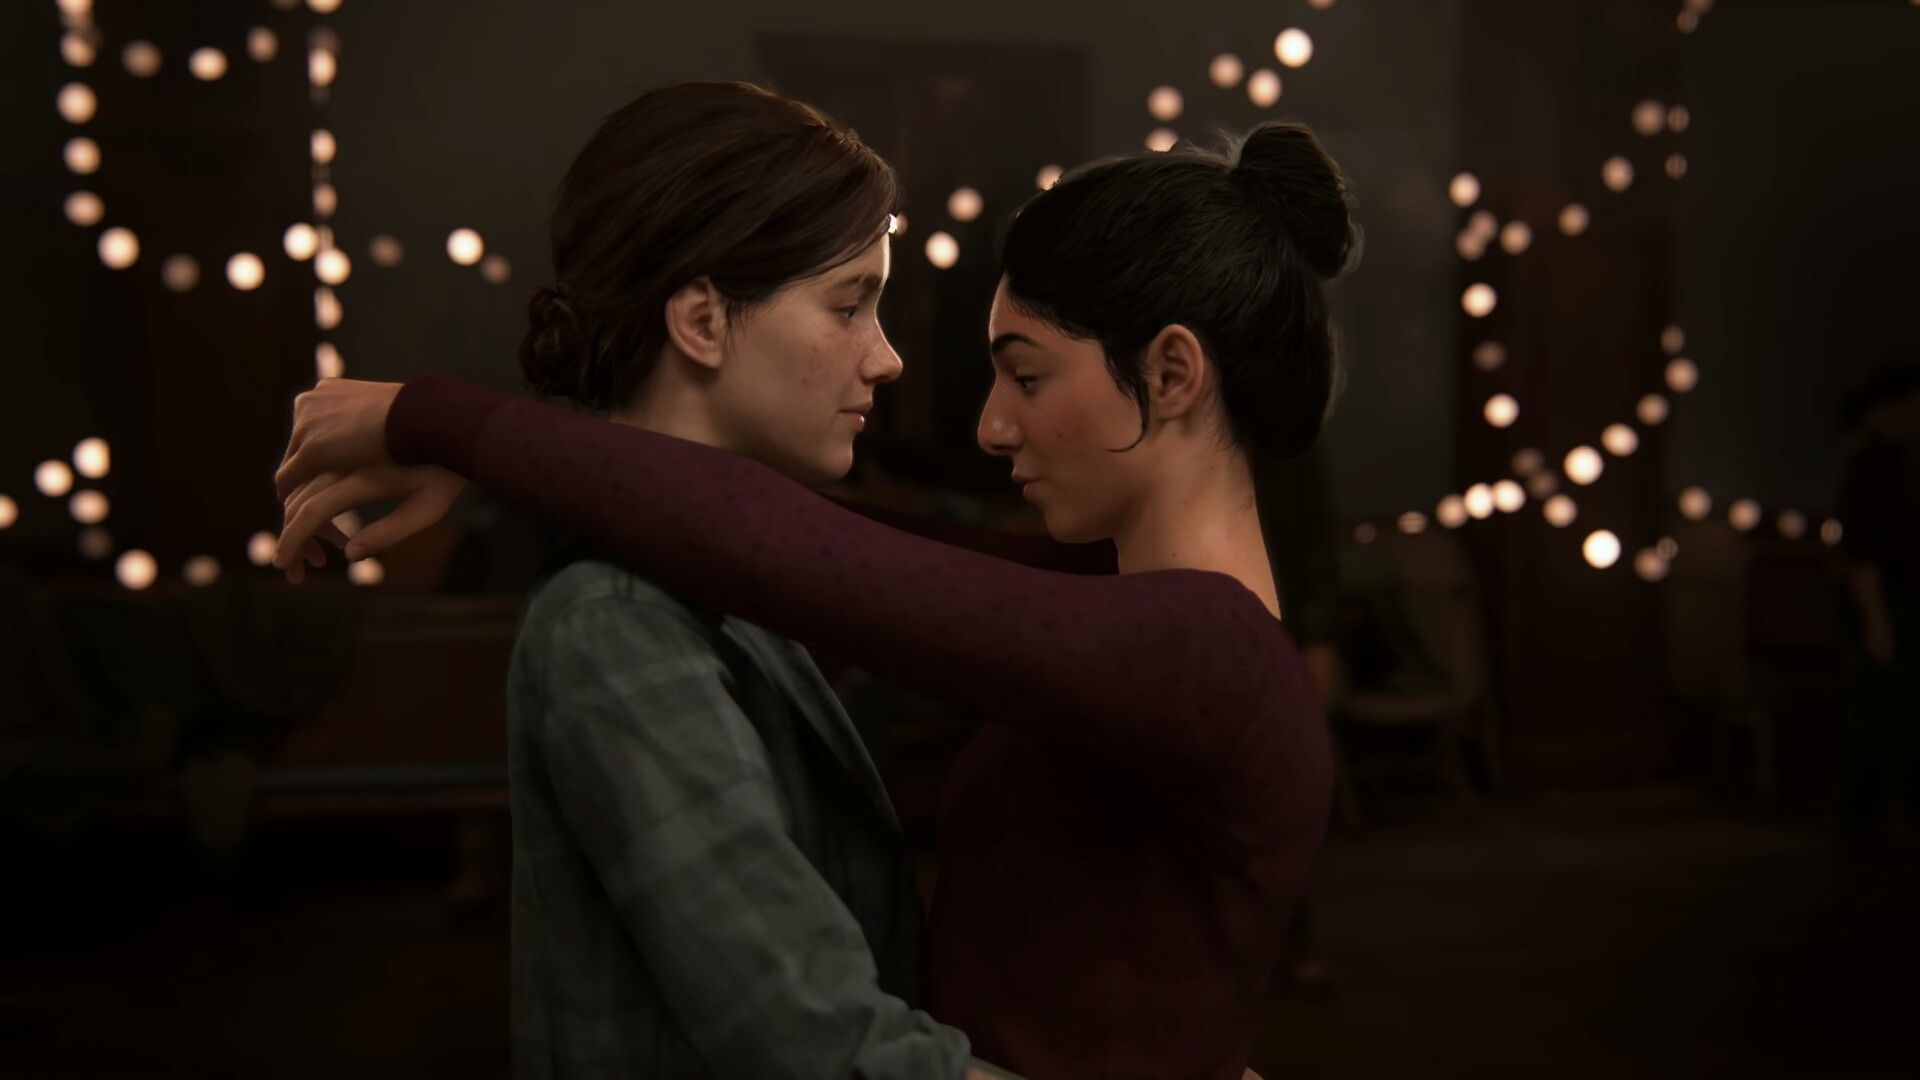 The Last of Us Part 2 is banned in the Middle East